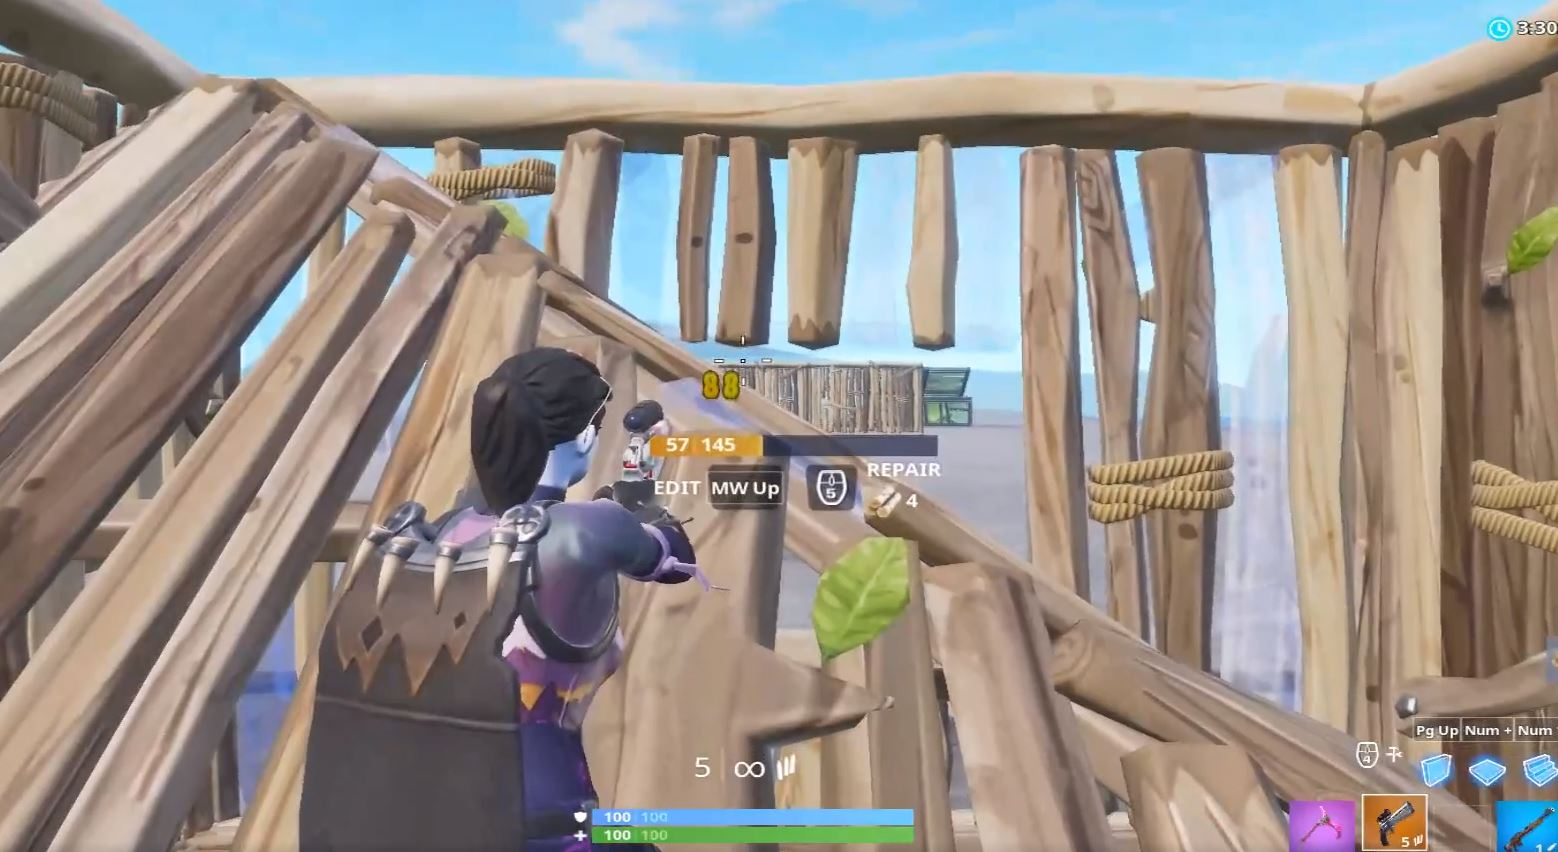 Fortnite glider redeploy returns with a compromise for critics